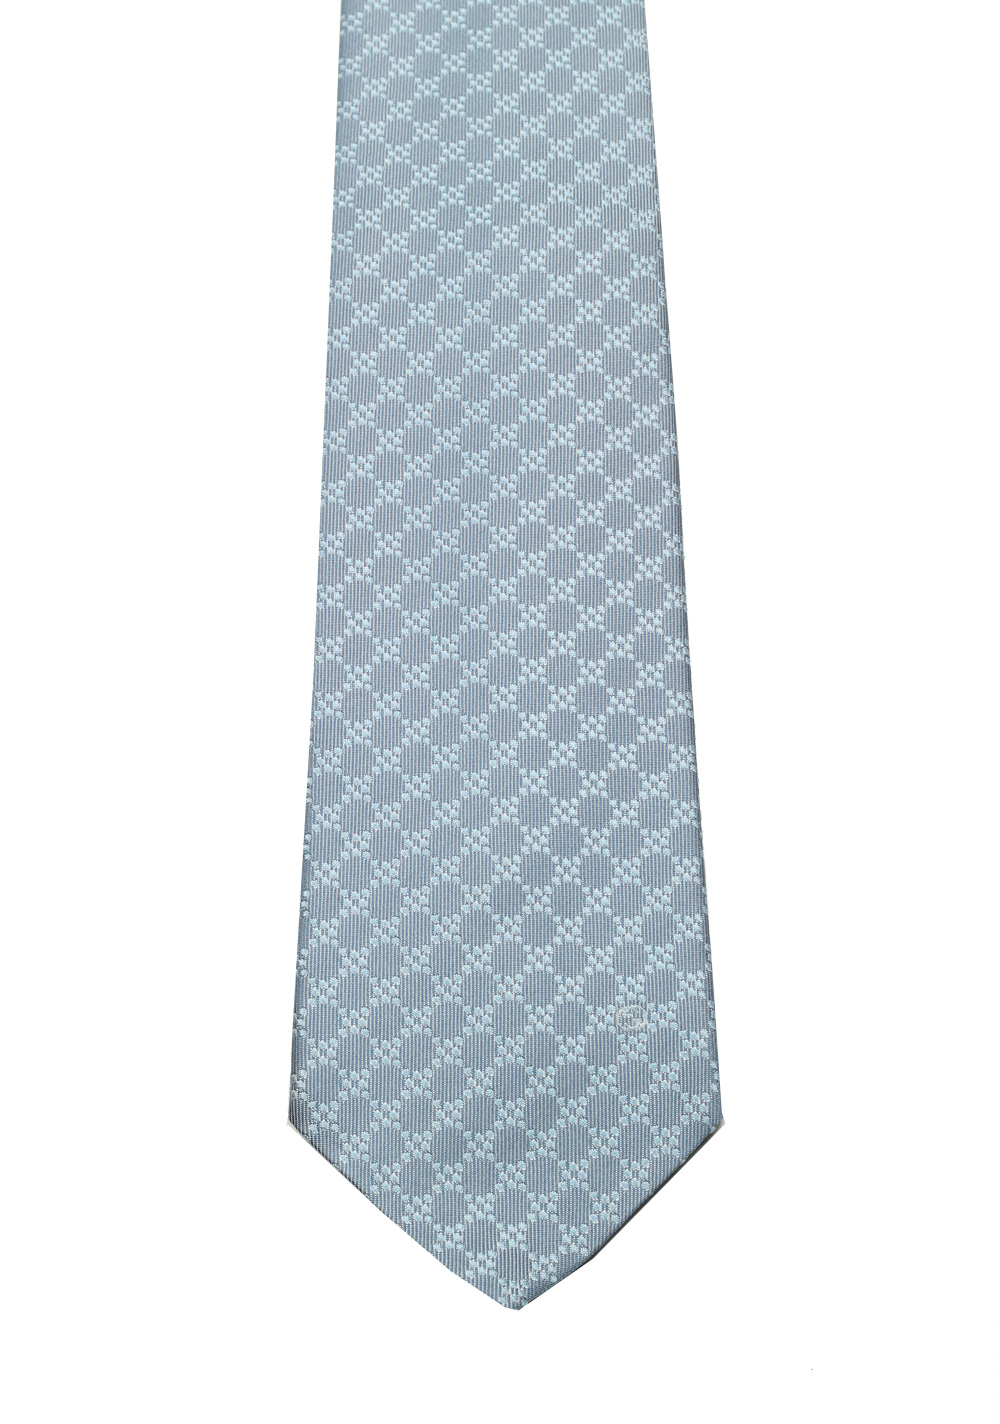 Gucci Gray Patterned Tie | Costume Limité